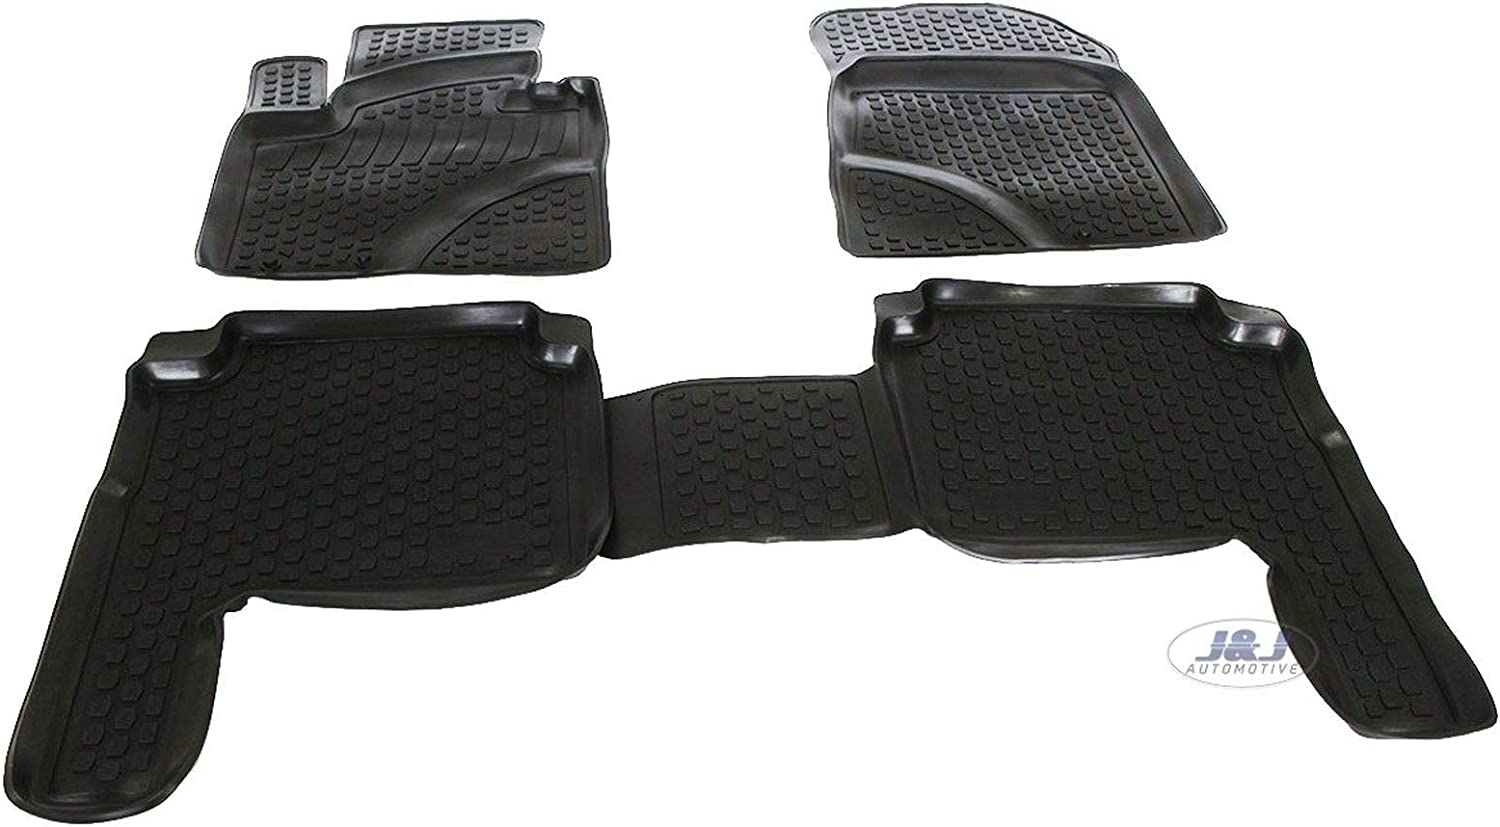 J/&J AUTOMOTIVE Tapis DE Sol en Caoutchouc 3D Exclusive Compatible avec KIA Sorento 2009-2012 4 pcs